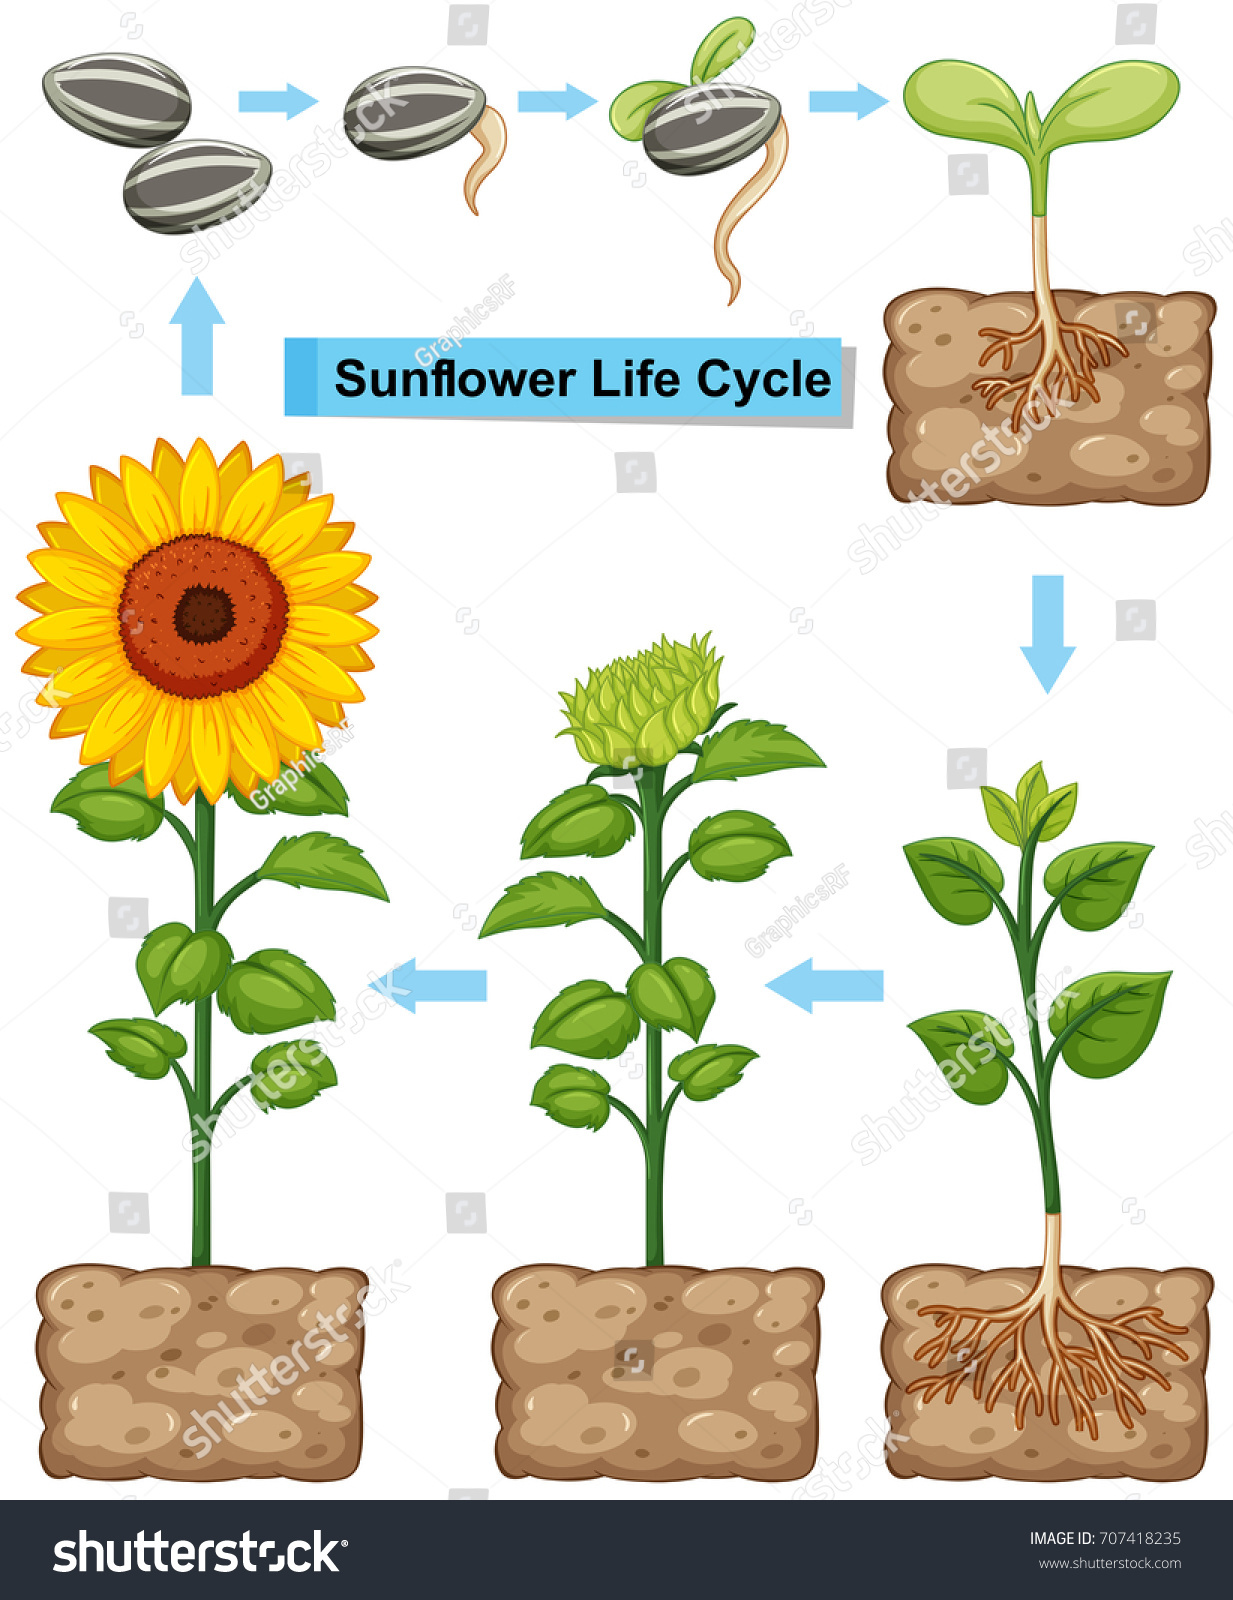 Life Cycle Sunflower Plant Illustration Stock Vector